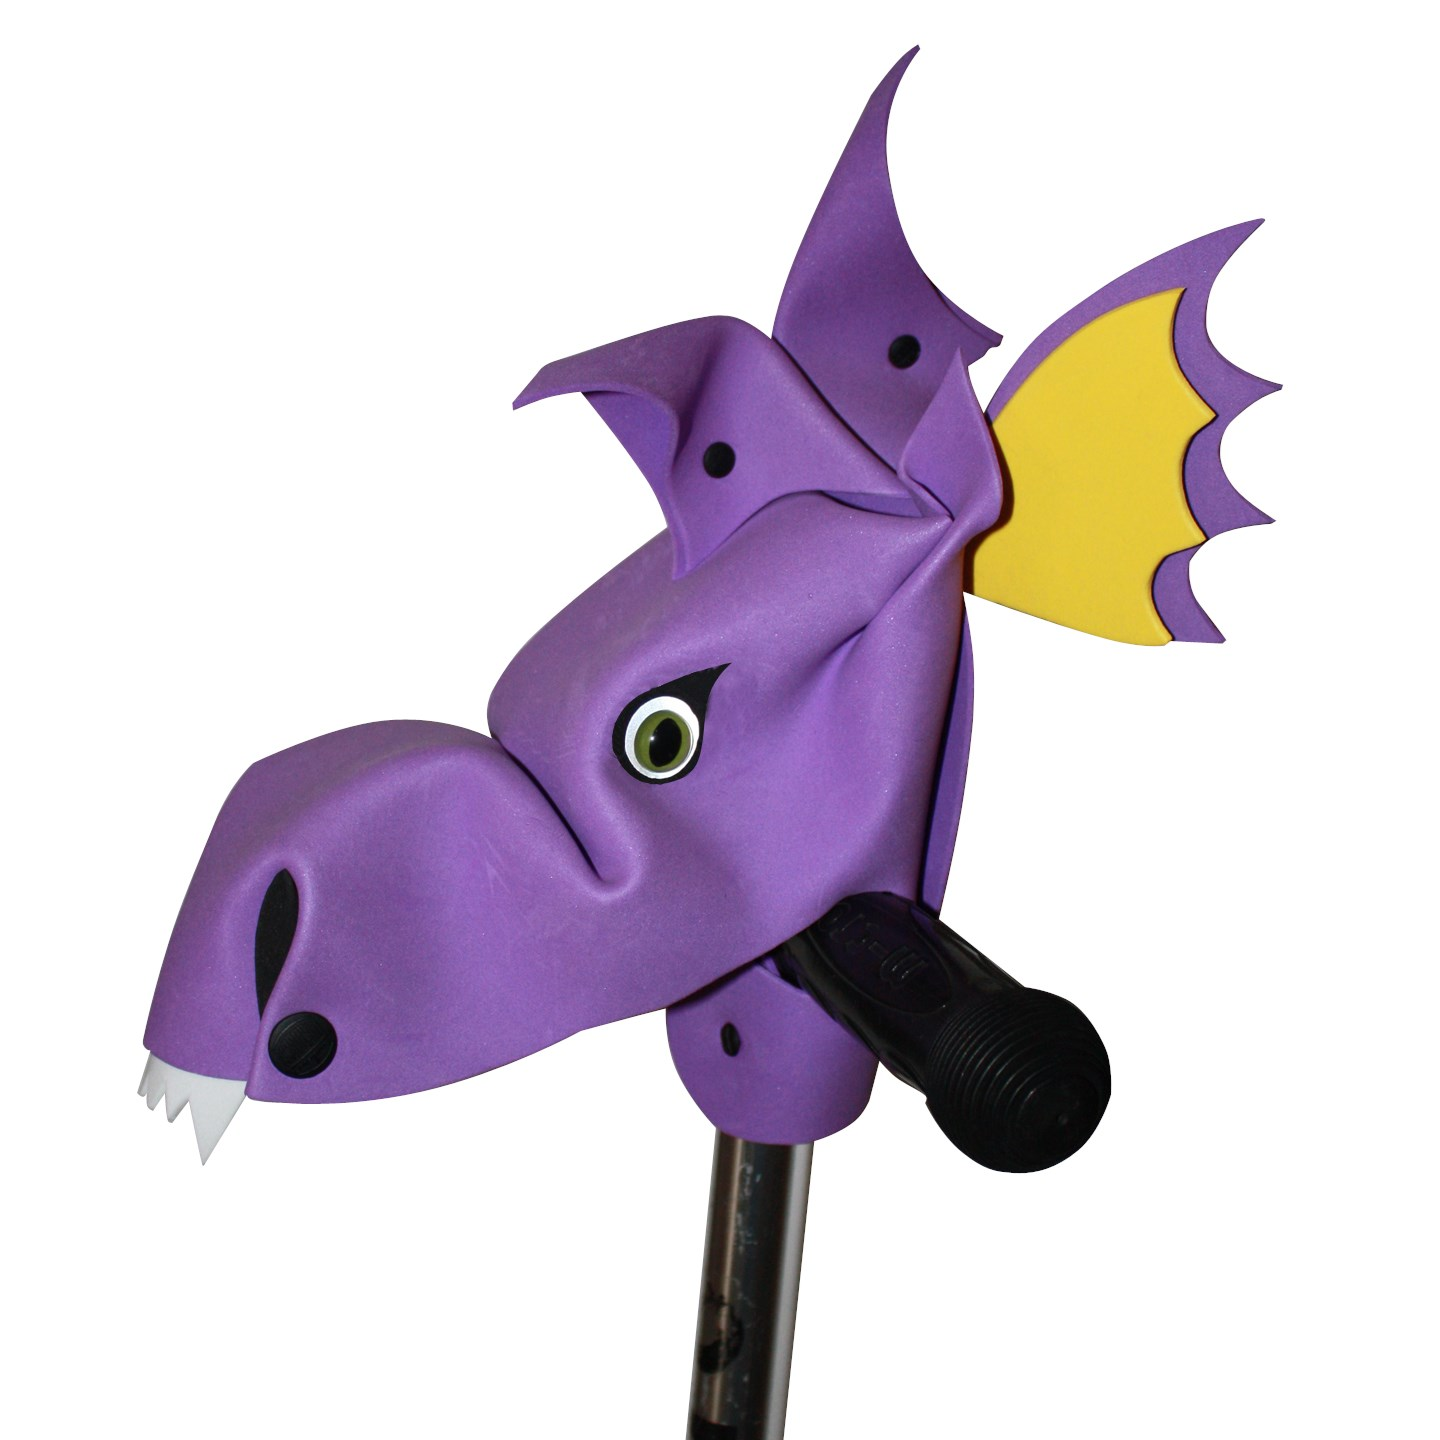 Blaze - purple hobby horse dragon bike and scooter accessory